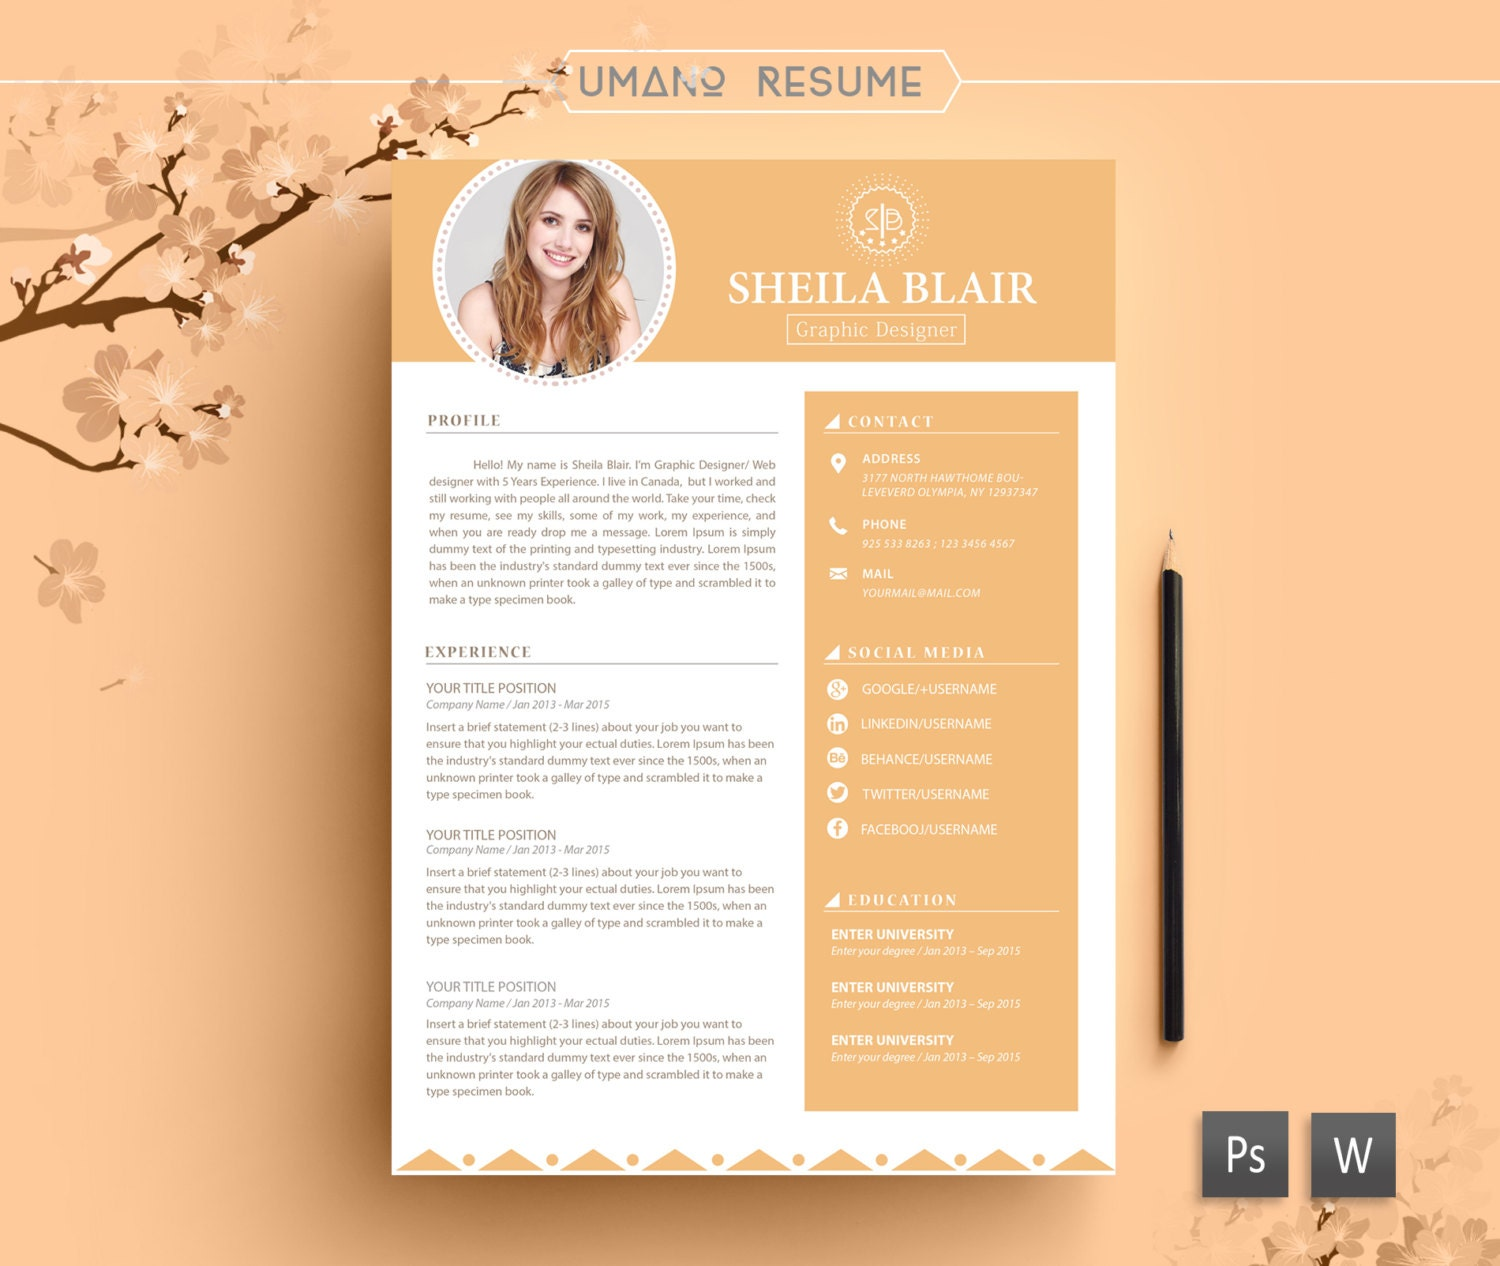 Free psd resume cover letter template - Bibtex thesis style